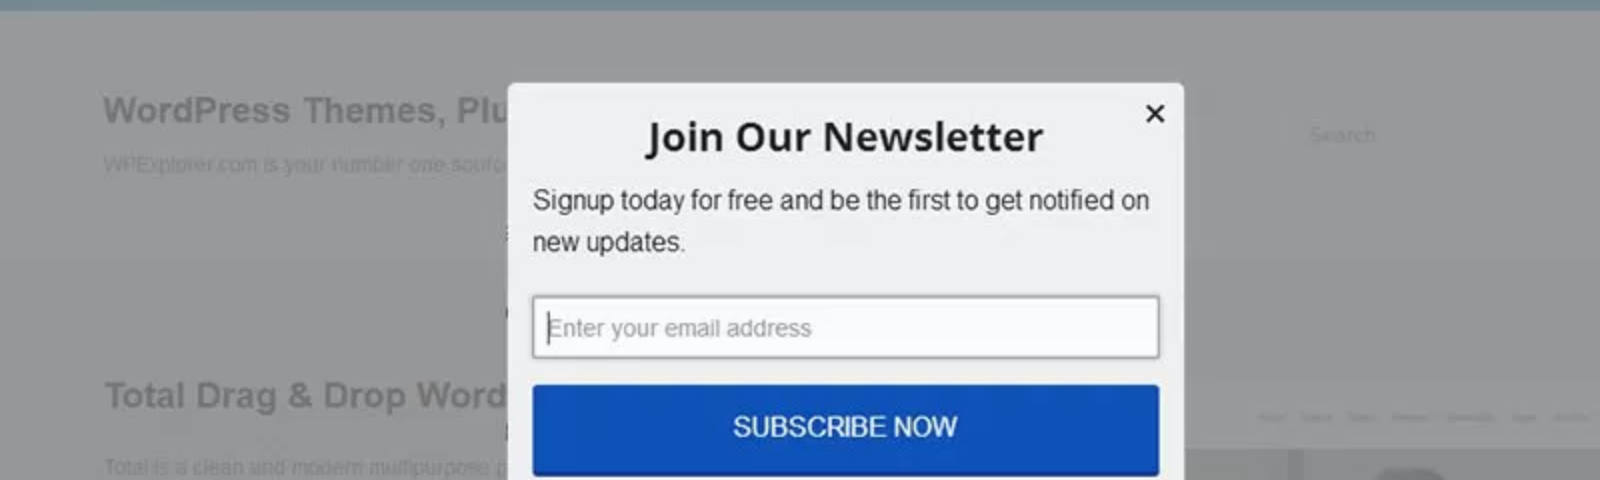 """45bf79481e 40 Alternative Words to Use Instead of """"Newsletter"""""""